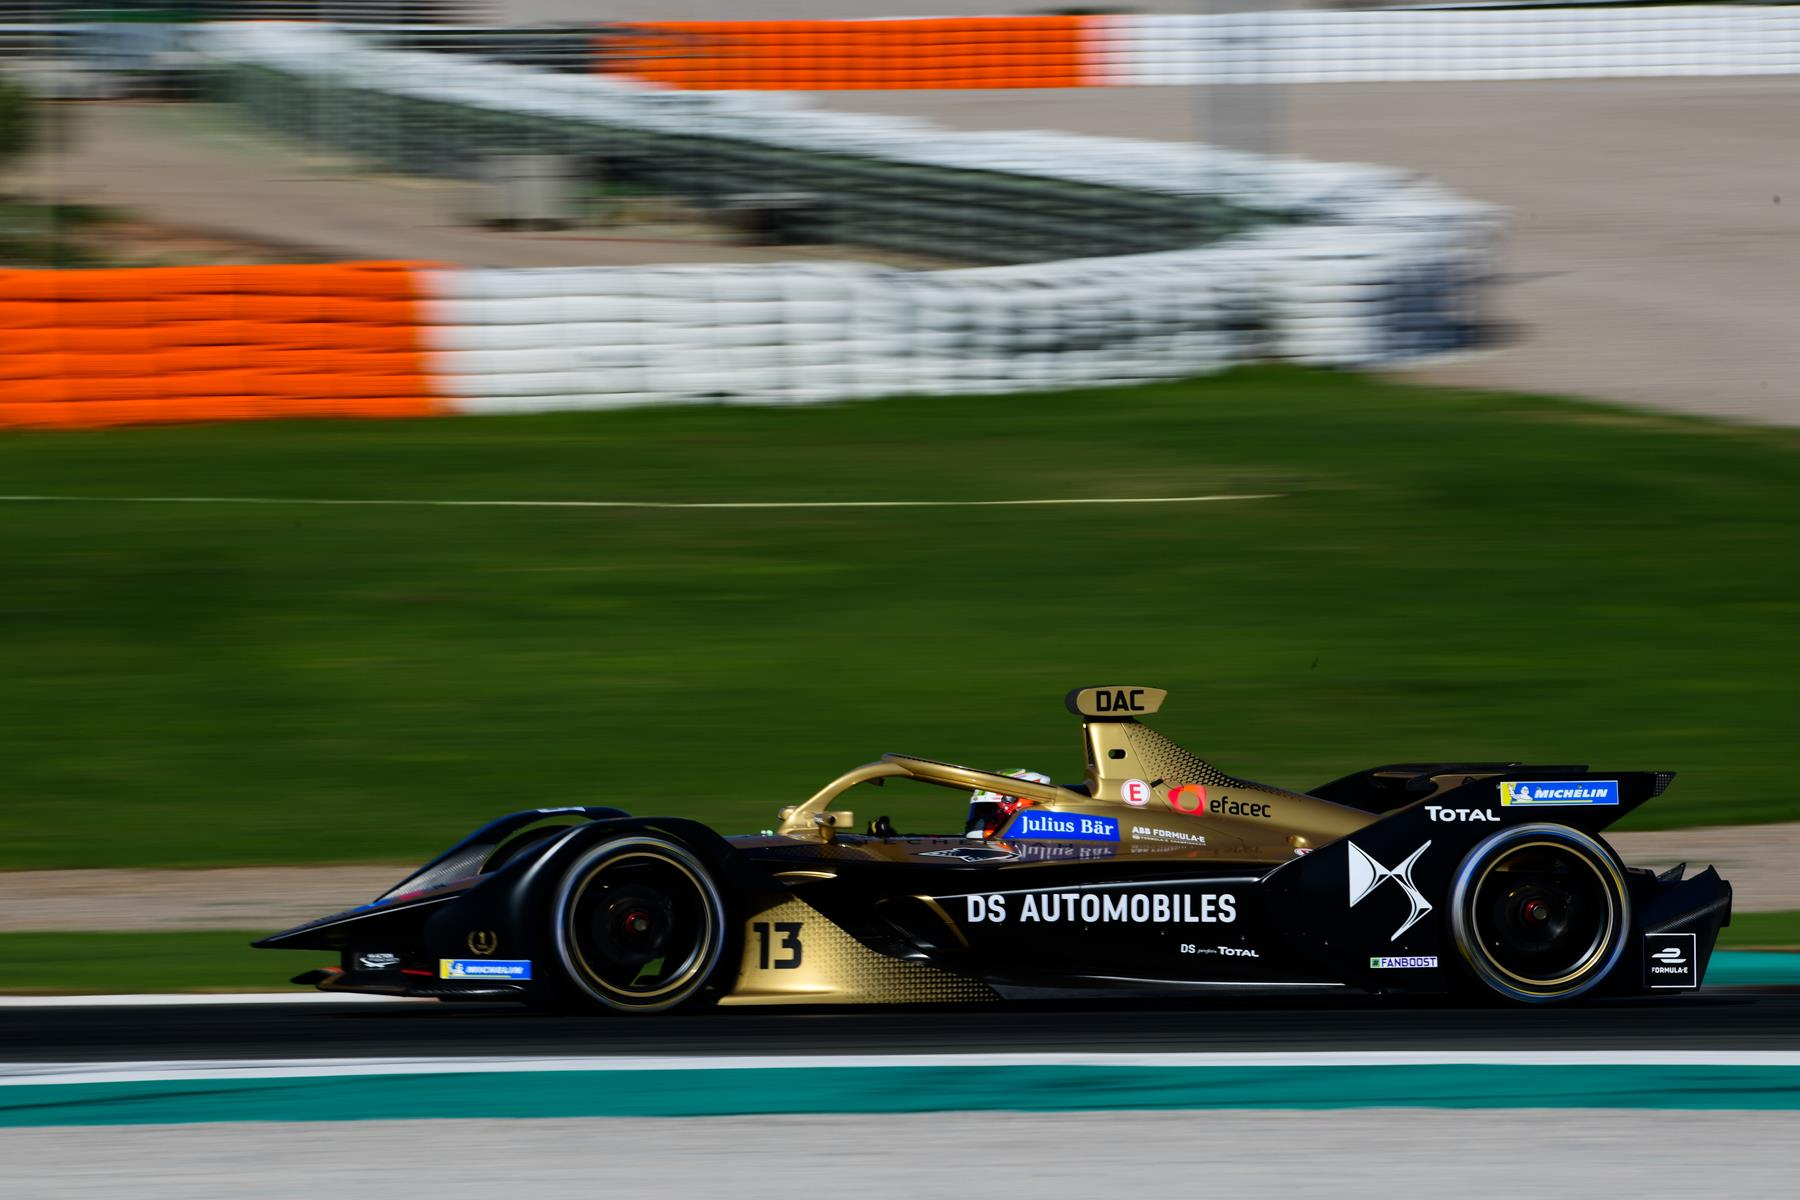 Antonio-Felix-da-Costa-DS-Techeetah-Valencia-Test-Lou-Johnson-Spacesuit-Media